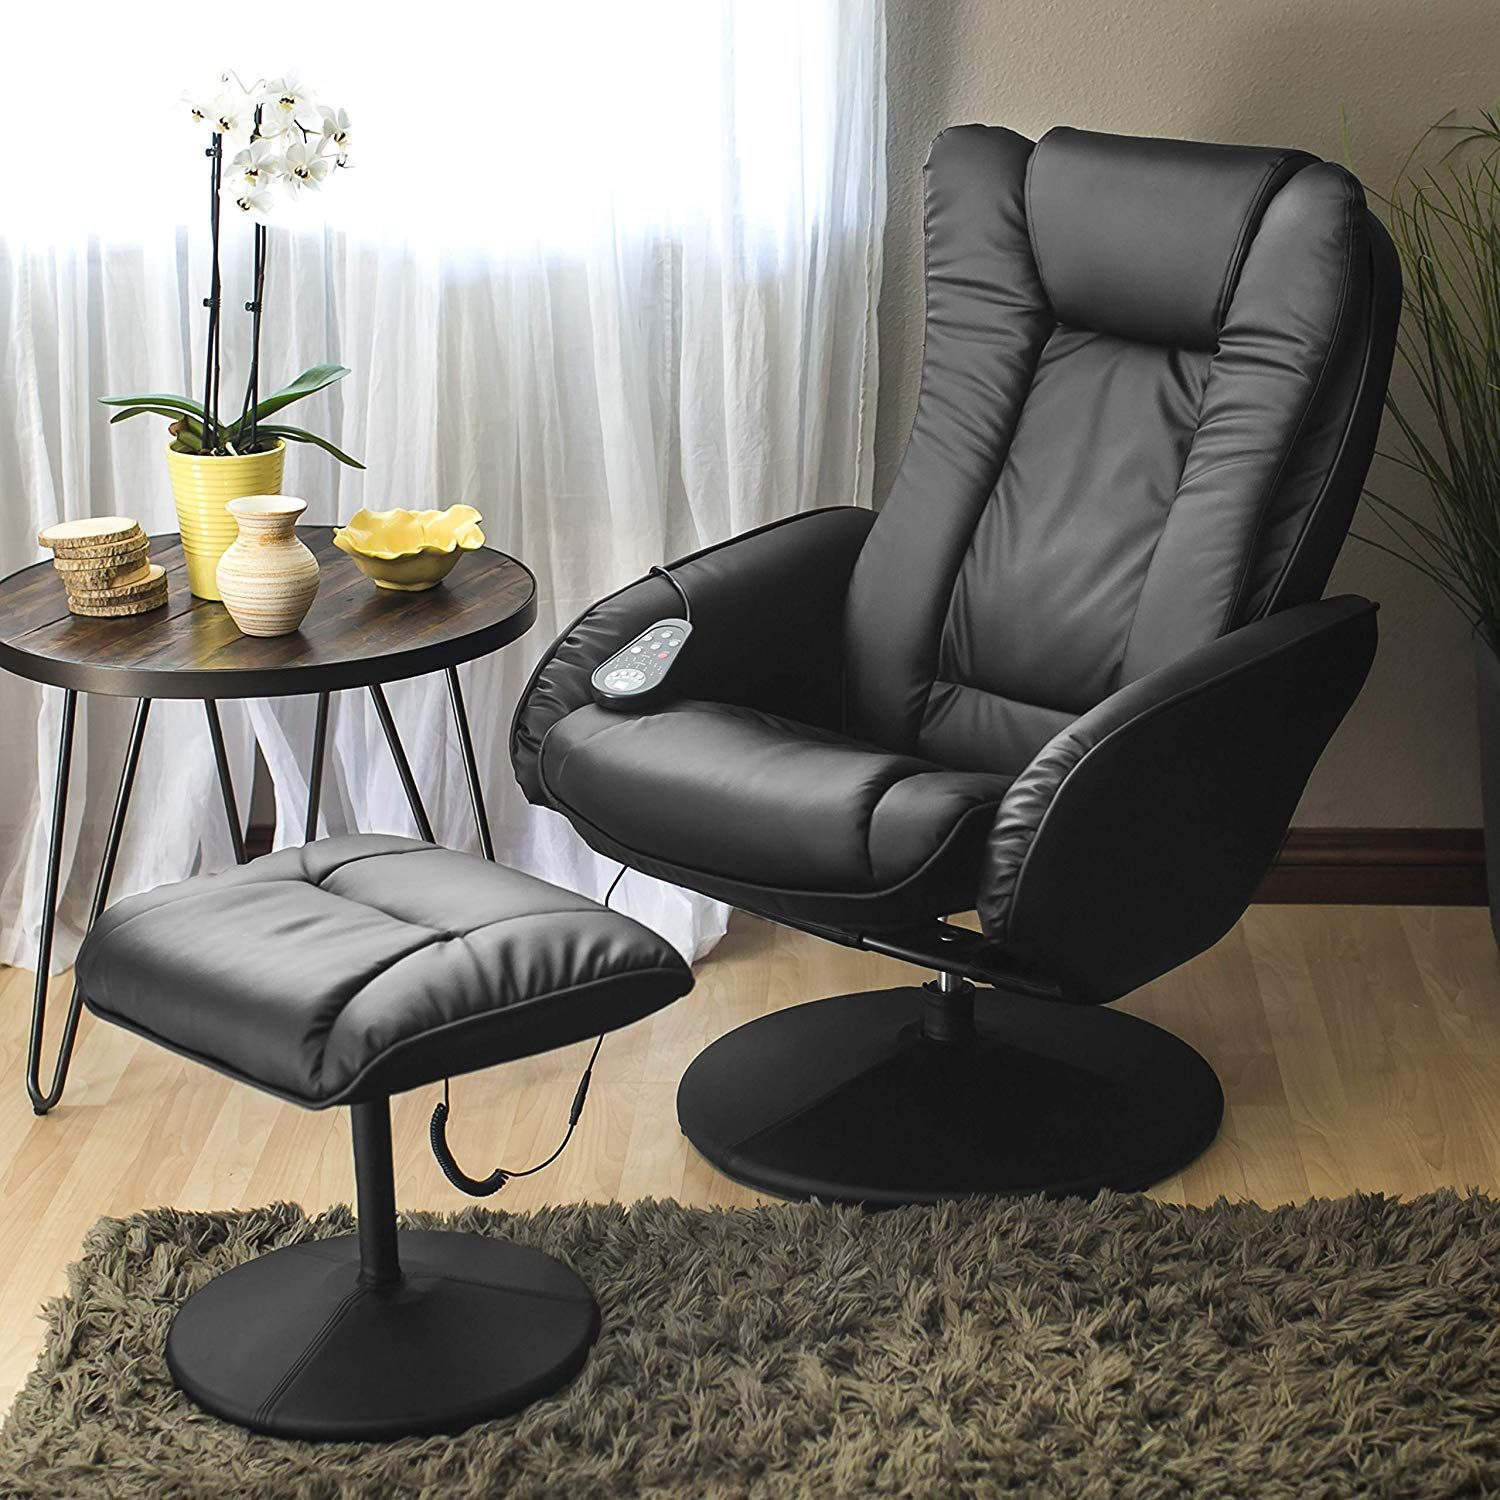 Best Choice Products Faux Leather Massage Recliner Chair w